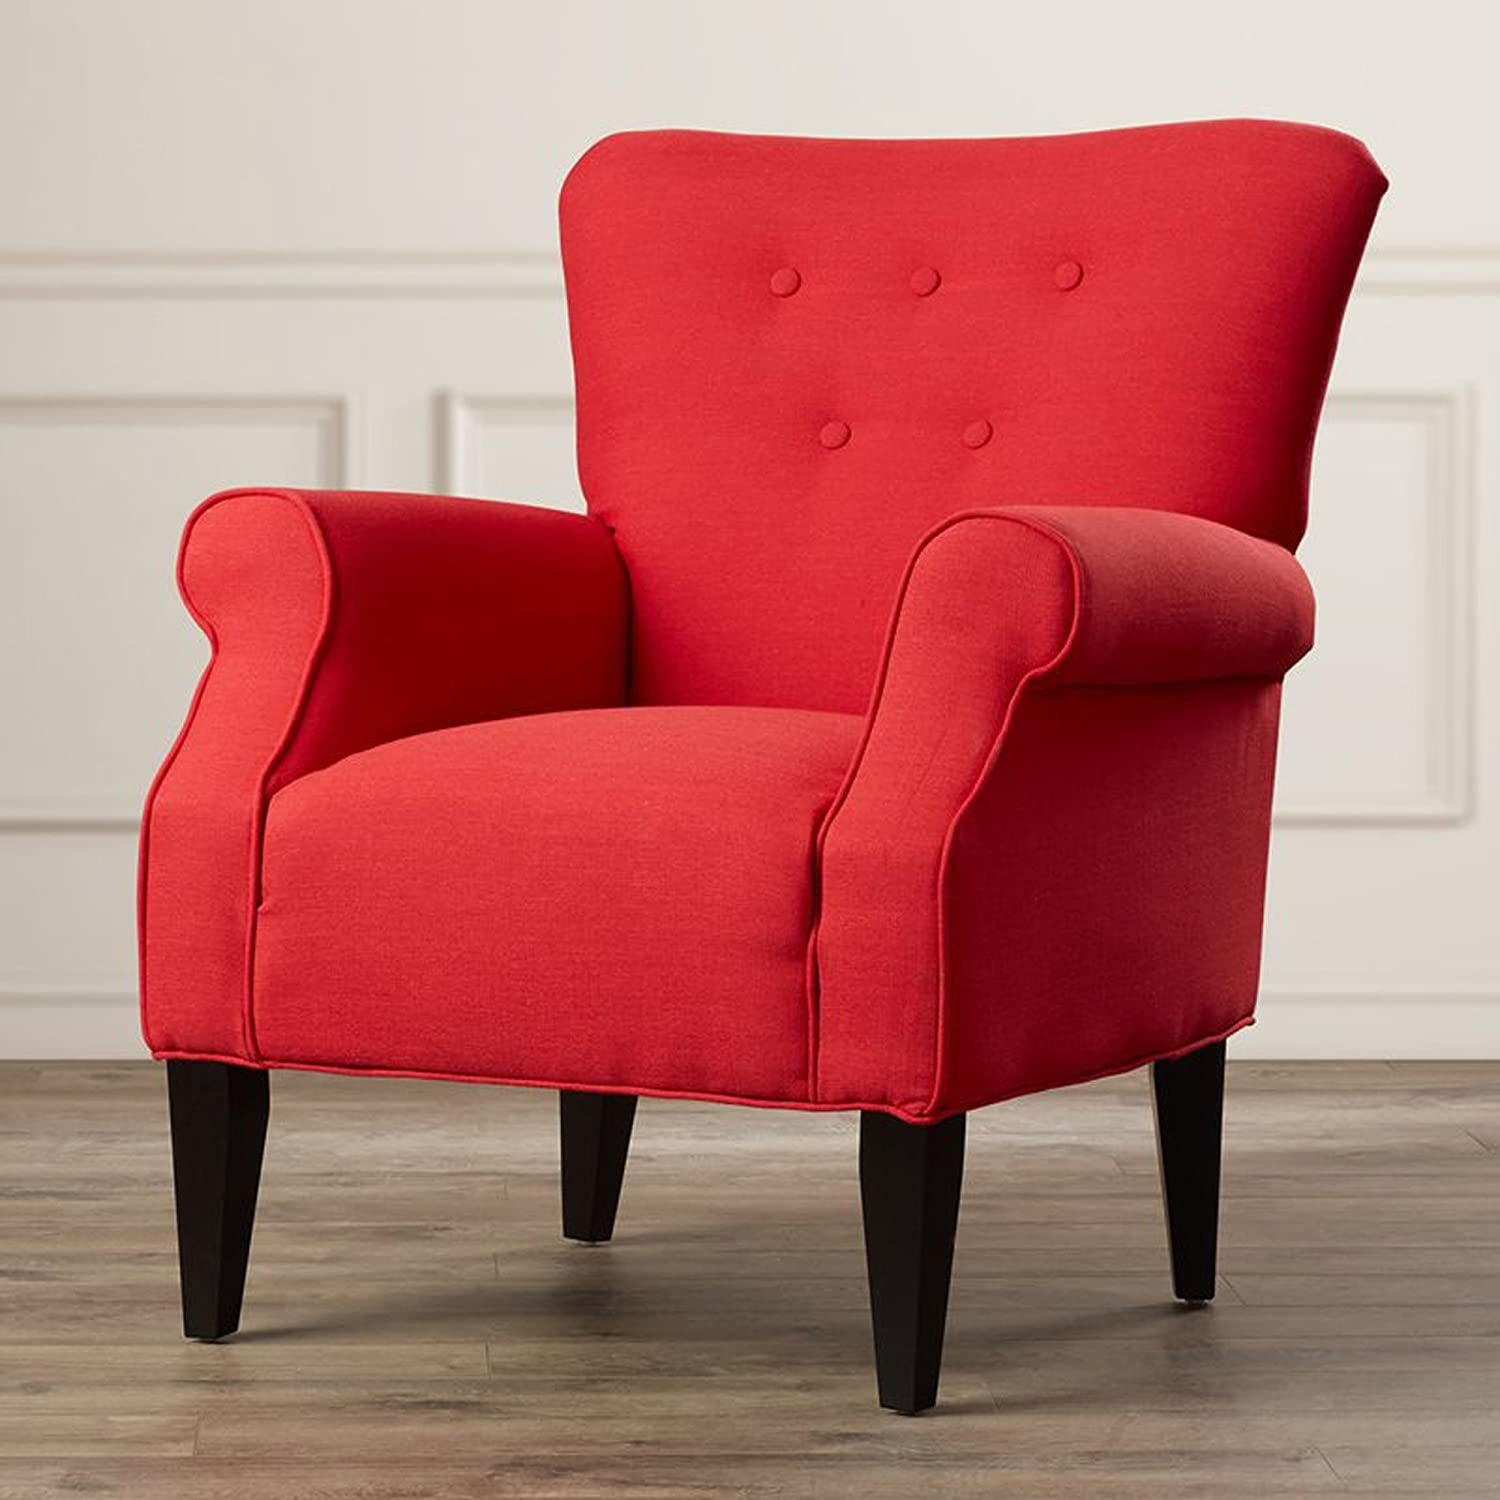 Accent Armchair - Button Tufted Back Arm Chair - Polyester Upholstered Modern Chic Seat (Lipstick Red